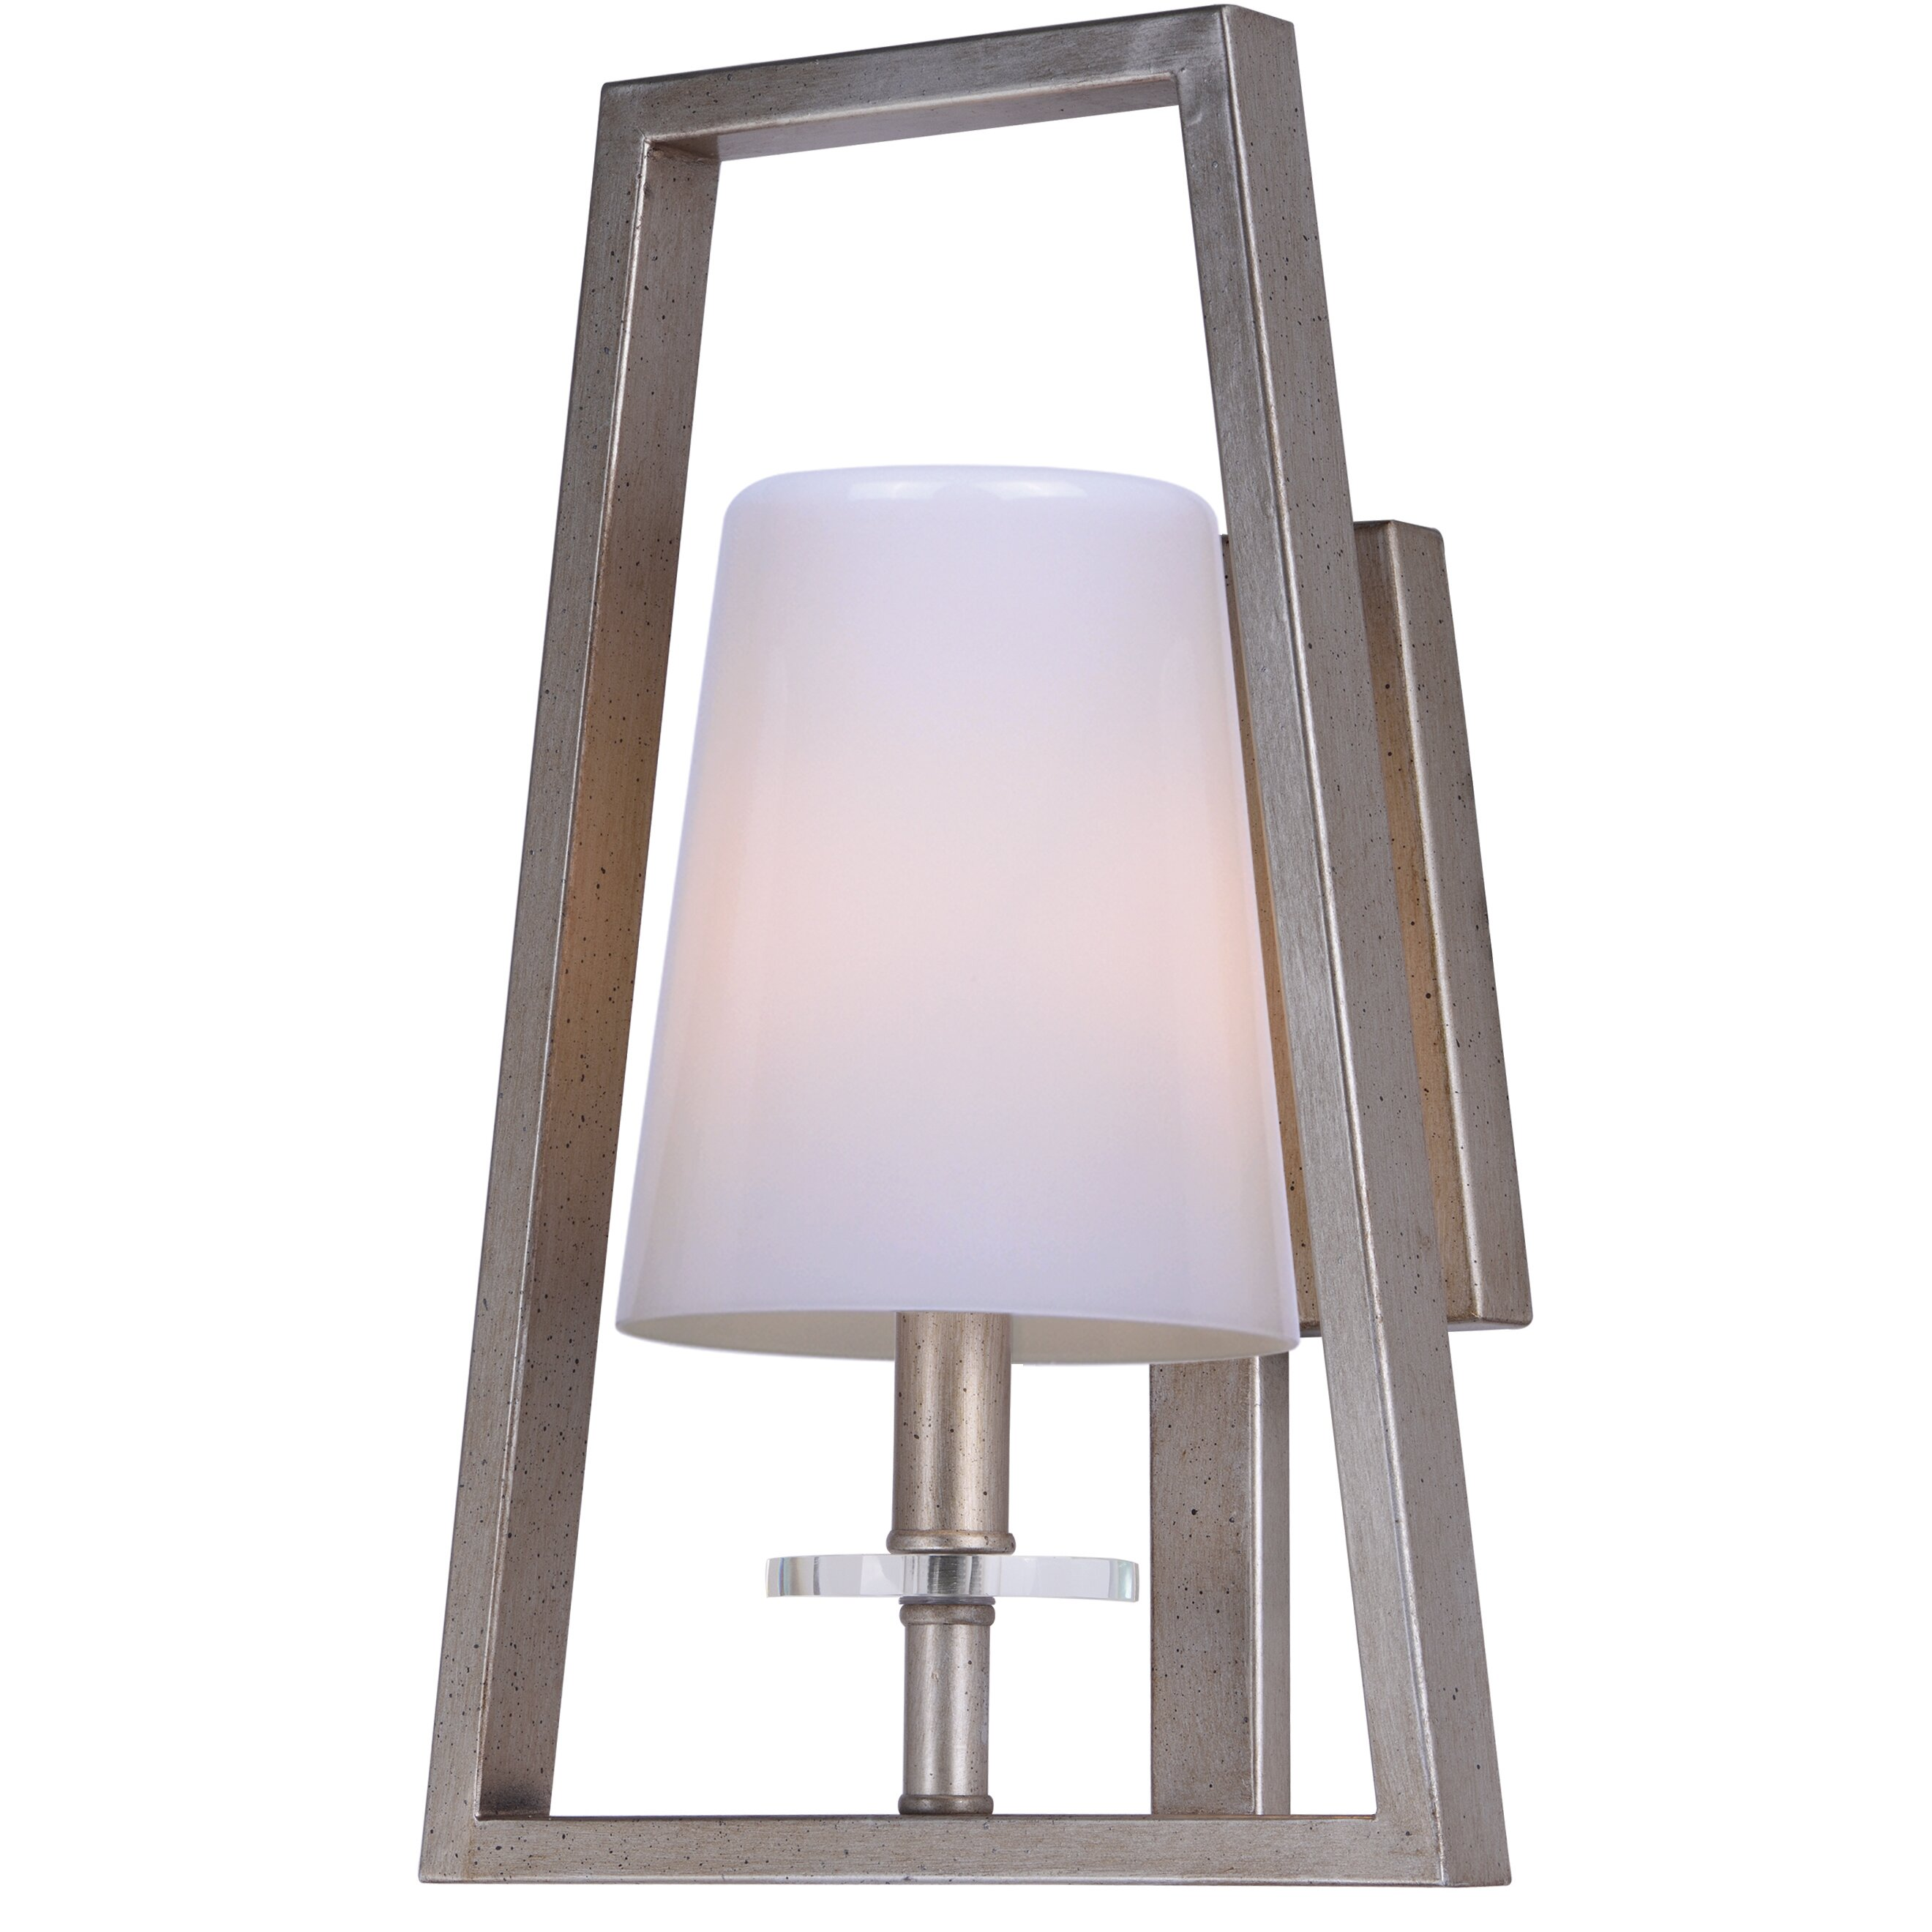 Wall Sconce With Magnifying Glass : Mercer41 Villers 1 Light Wall Sconce Wayfair